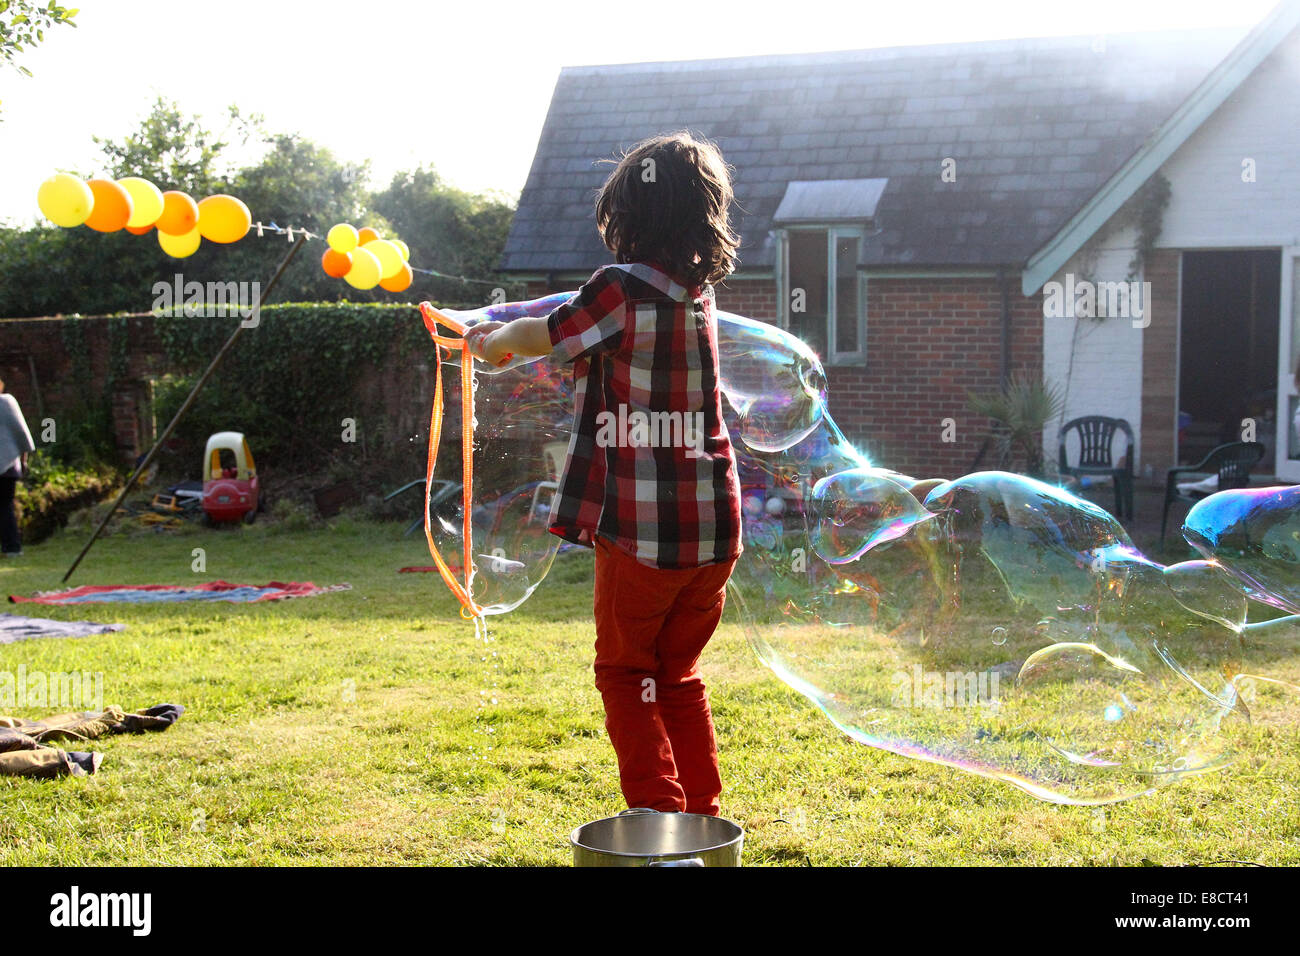 A young child making bubbles in a garden on a summers day During a garden party. Stock Photo